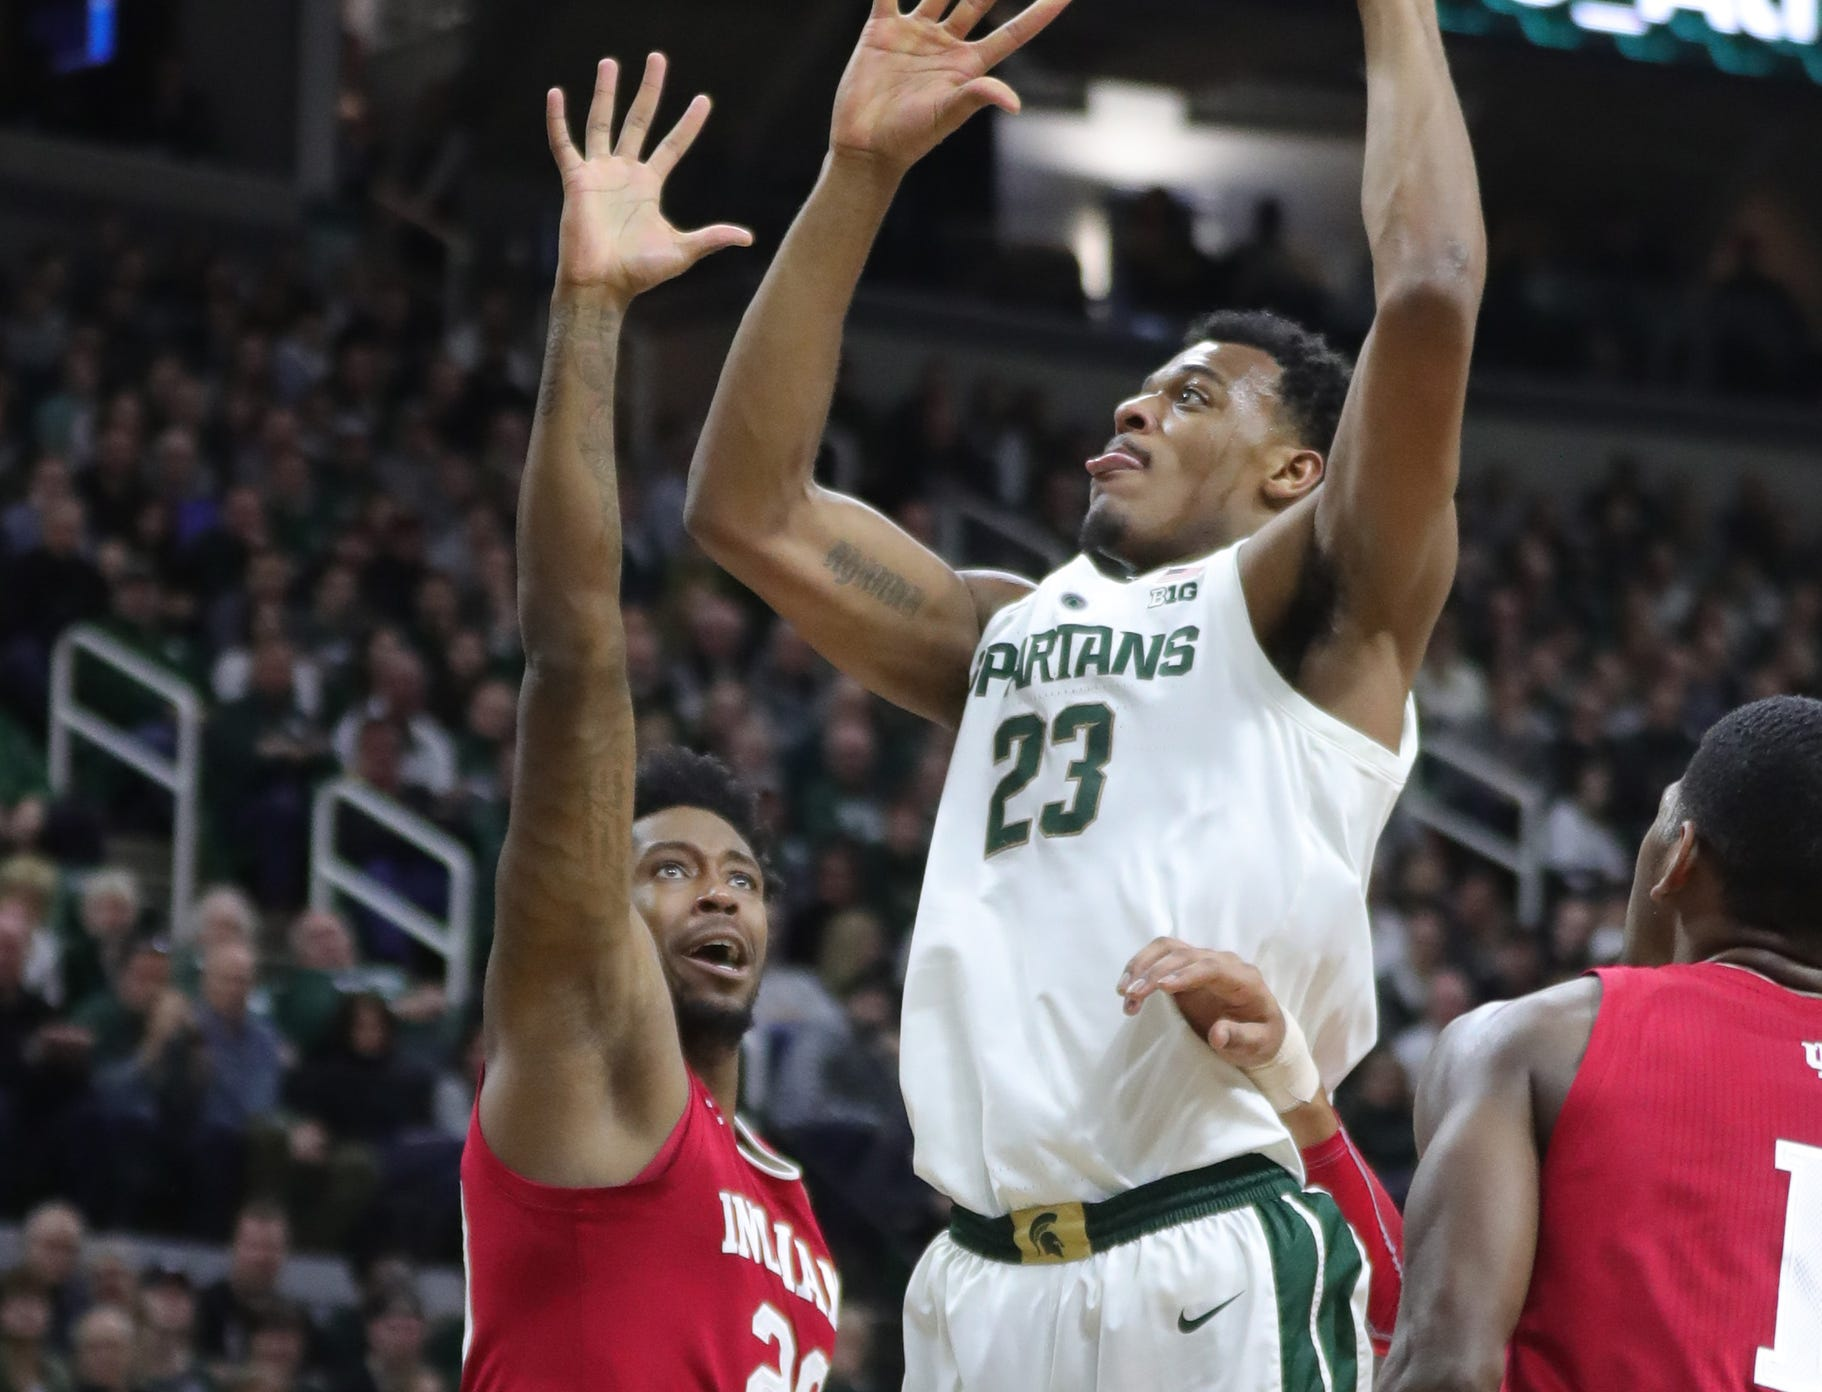 Michigan State forward Xavier Tillman scores against Indiana forward De'Ron Davis during first half action Saturday, Feb. 2, 2019 at the Breslin Center in East Lansing, Mich.